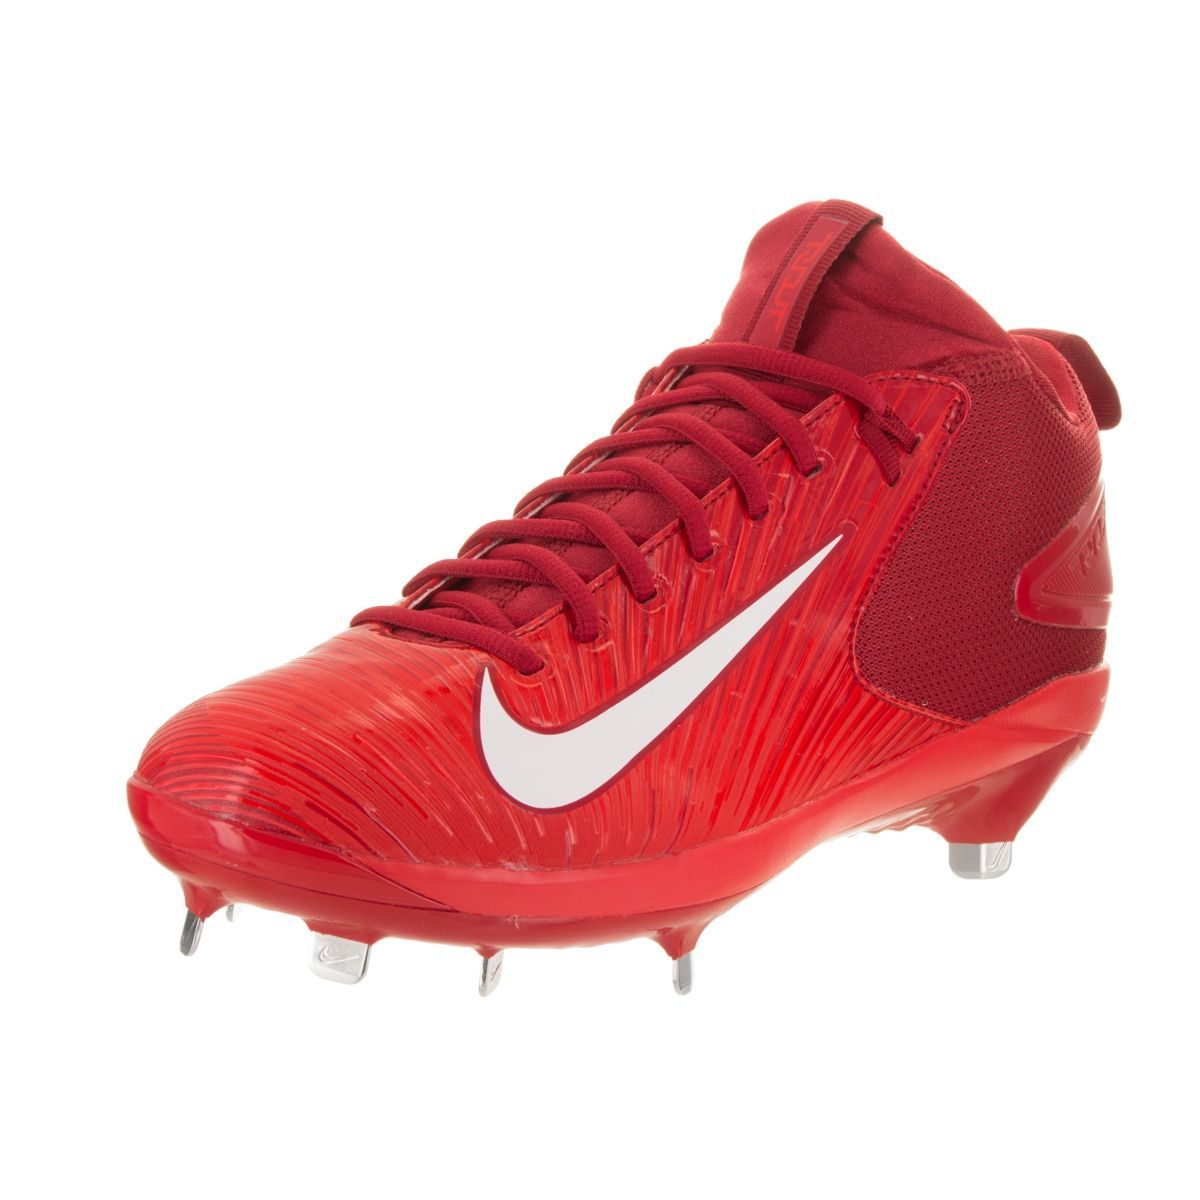 25935da401a9 Nike Men s Trout 3 Pro Synthetic Baseball Cleats